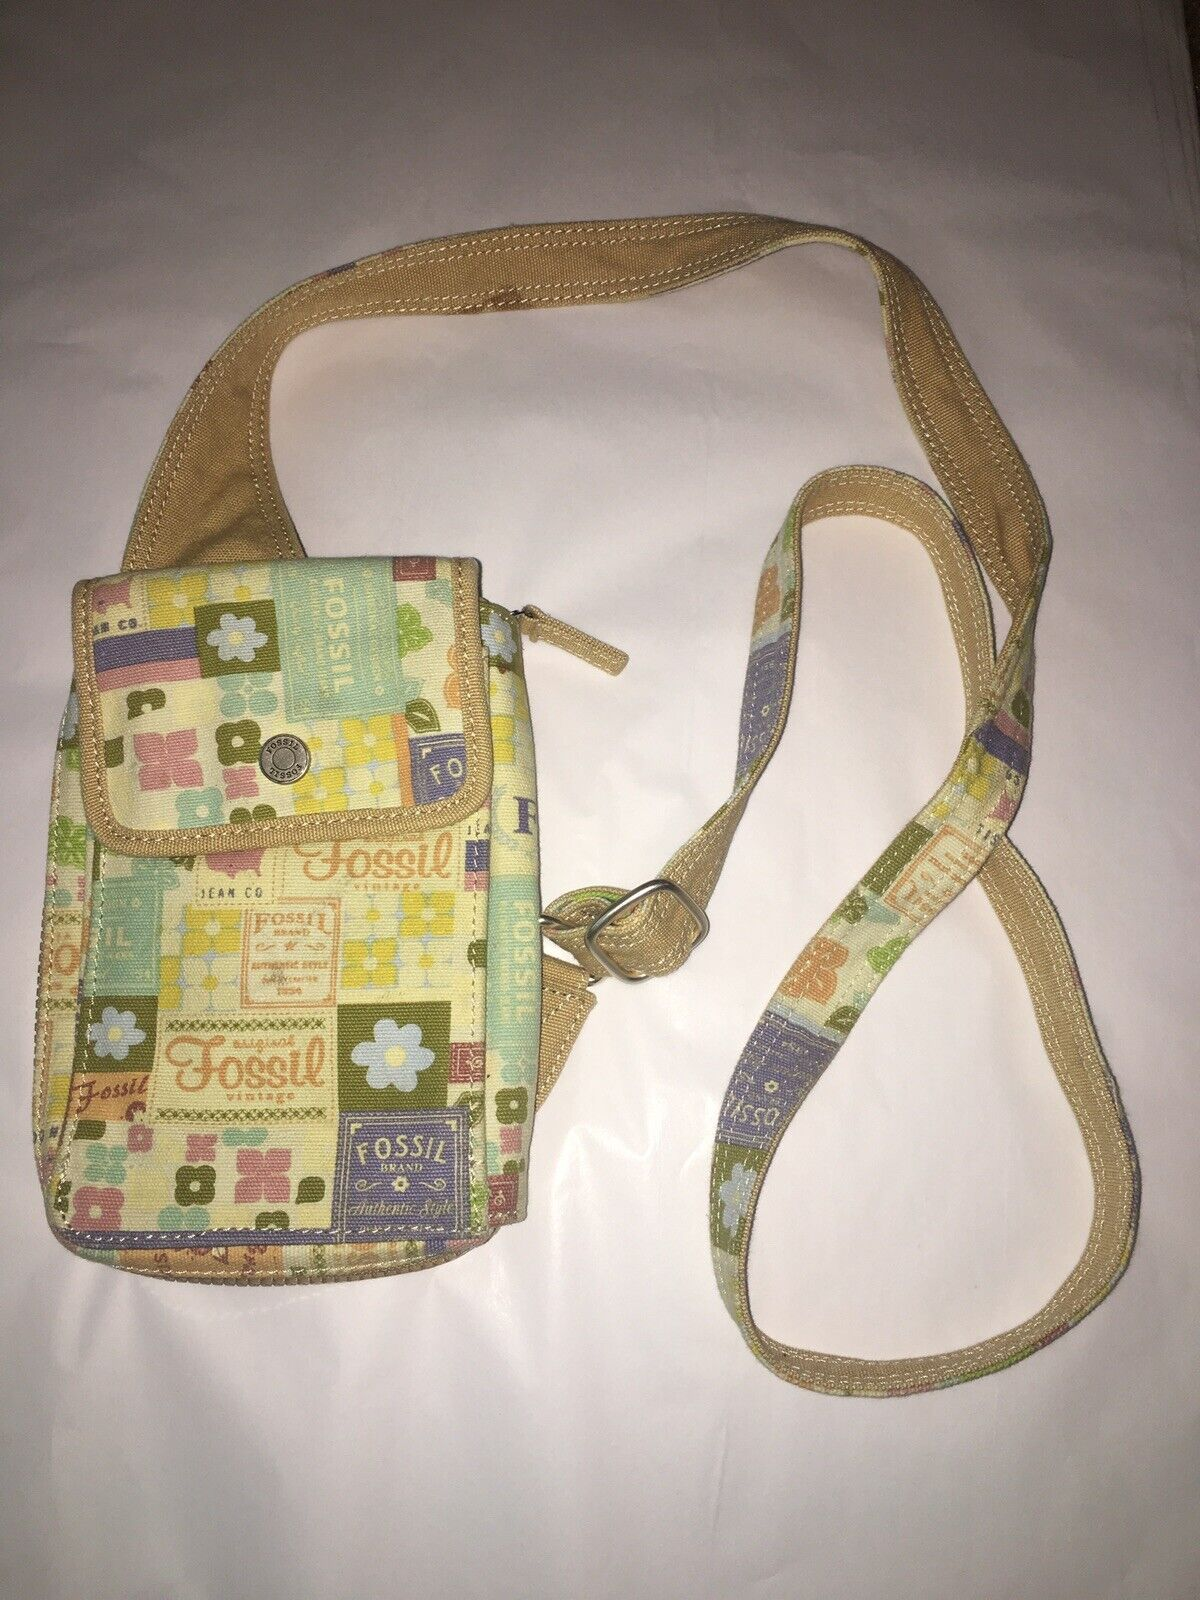 Fossil Small Tan Canvas Crossbody Bag - image 1